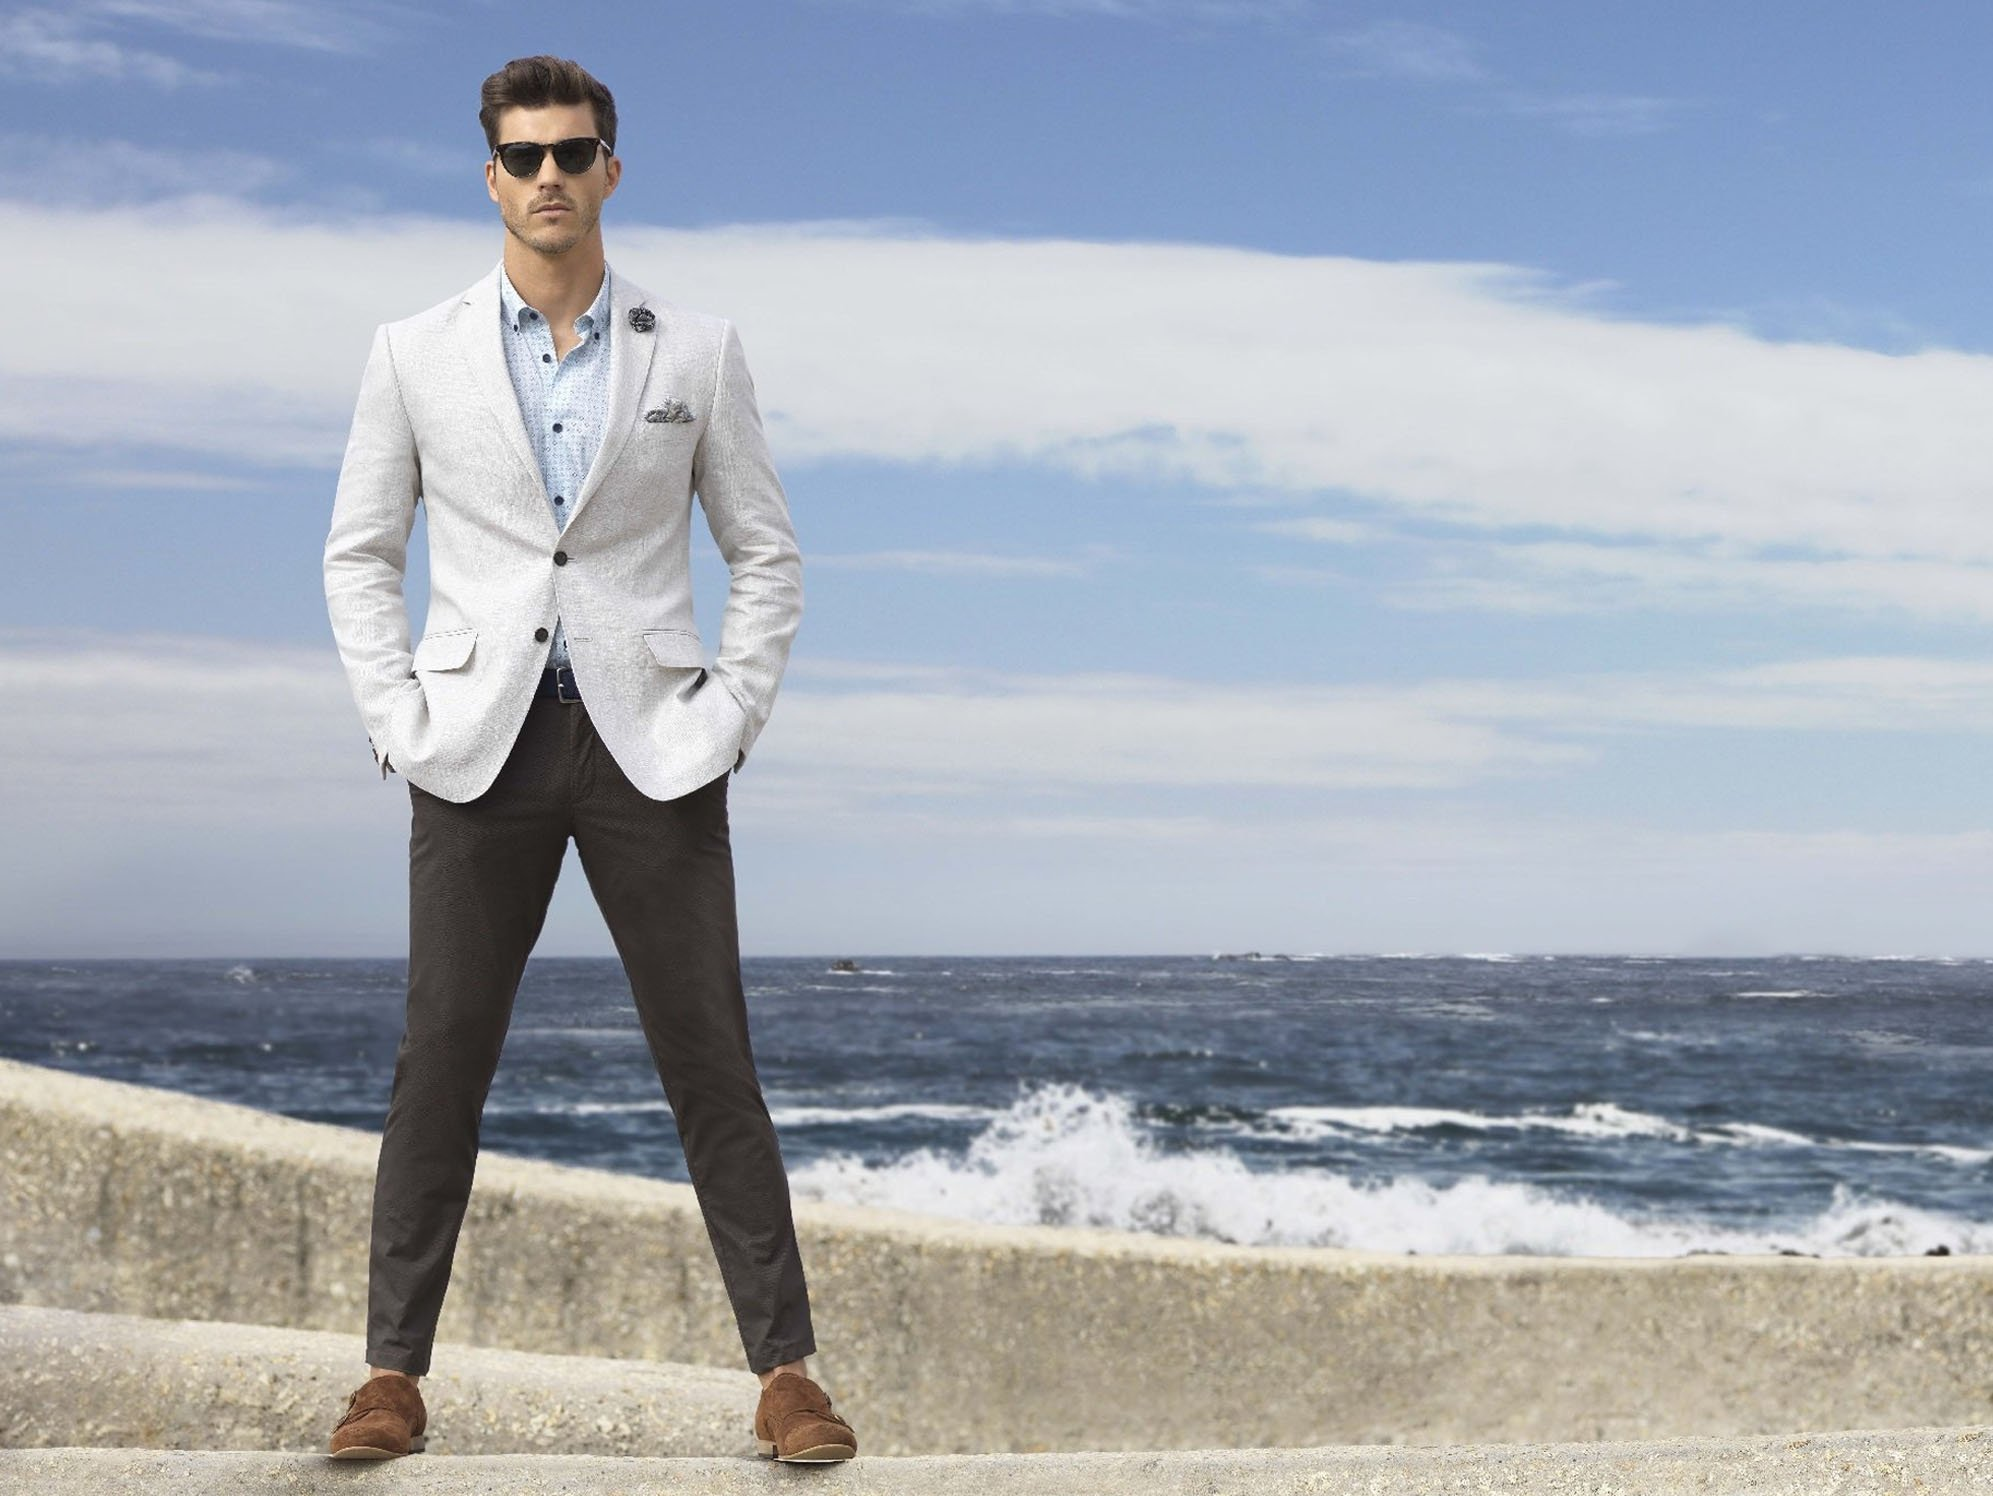 These 7 Dapper Outfit Options Are Fashion Gold For Guys Who Want To ...